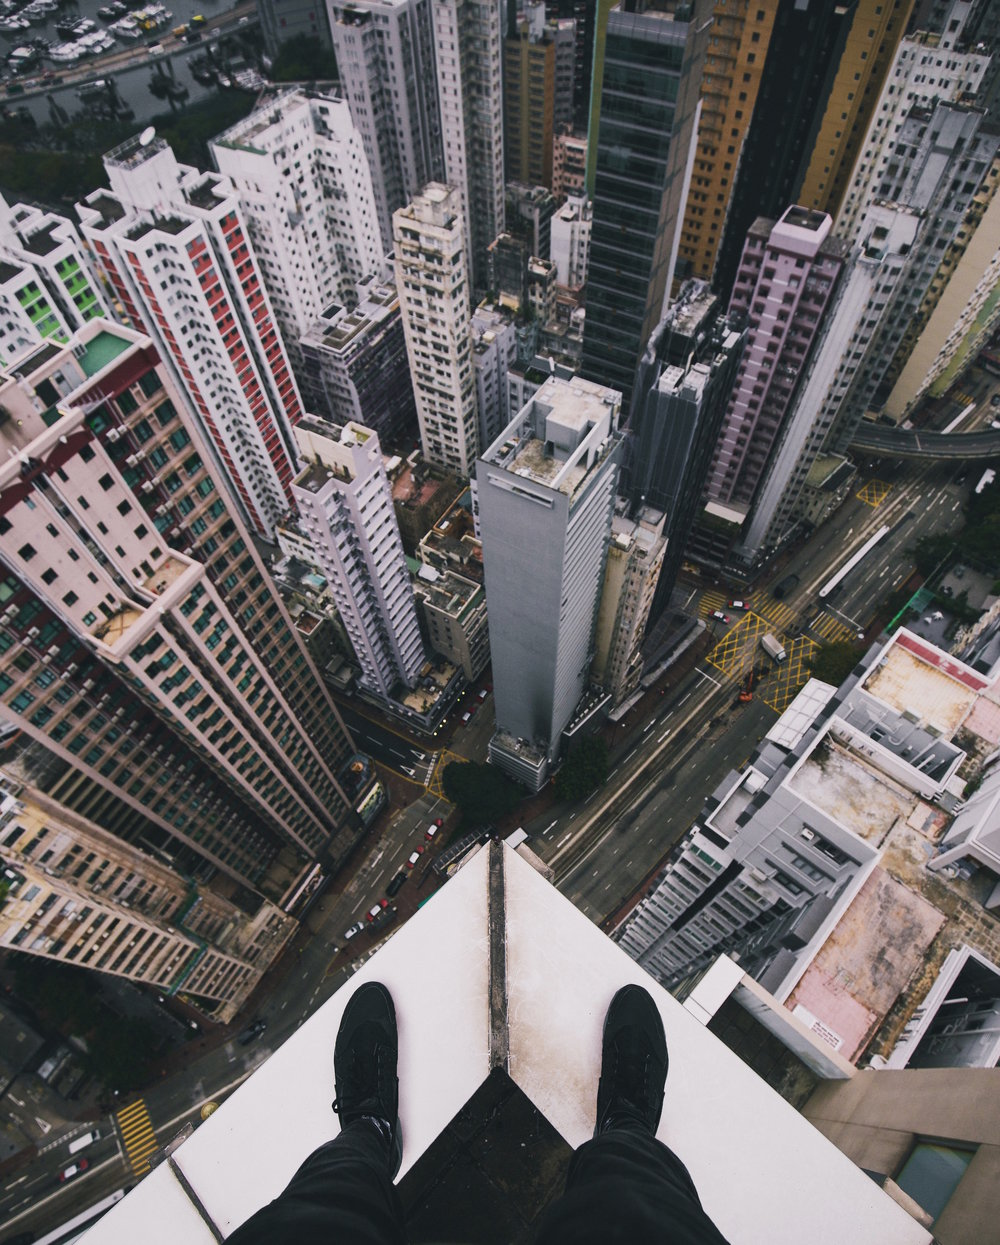 e0549-alen-palander-hong-kong-top-of-building-looking-down.jpg